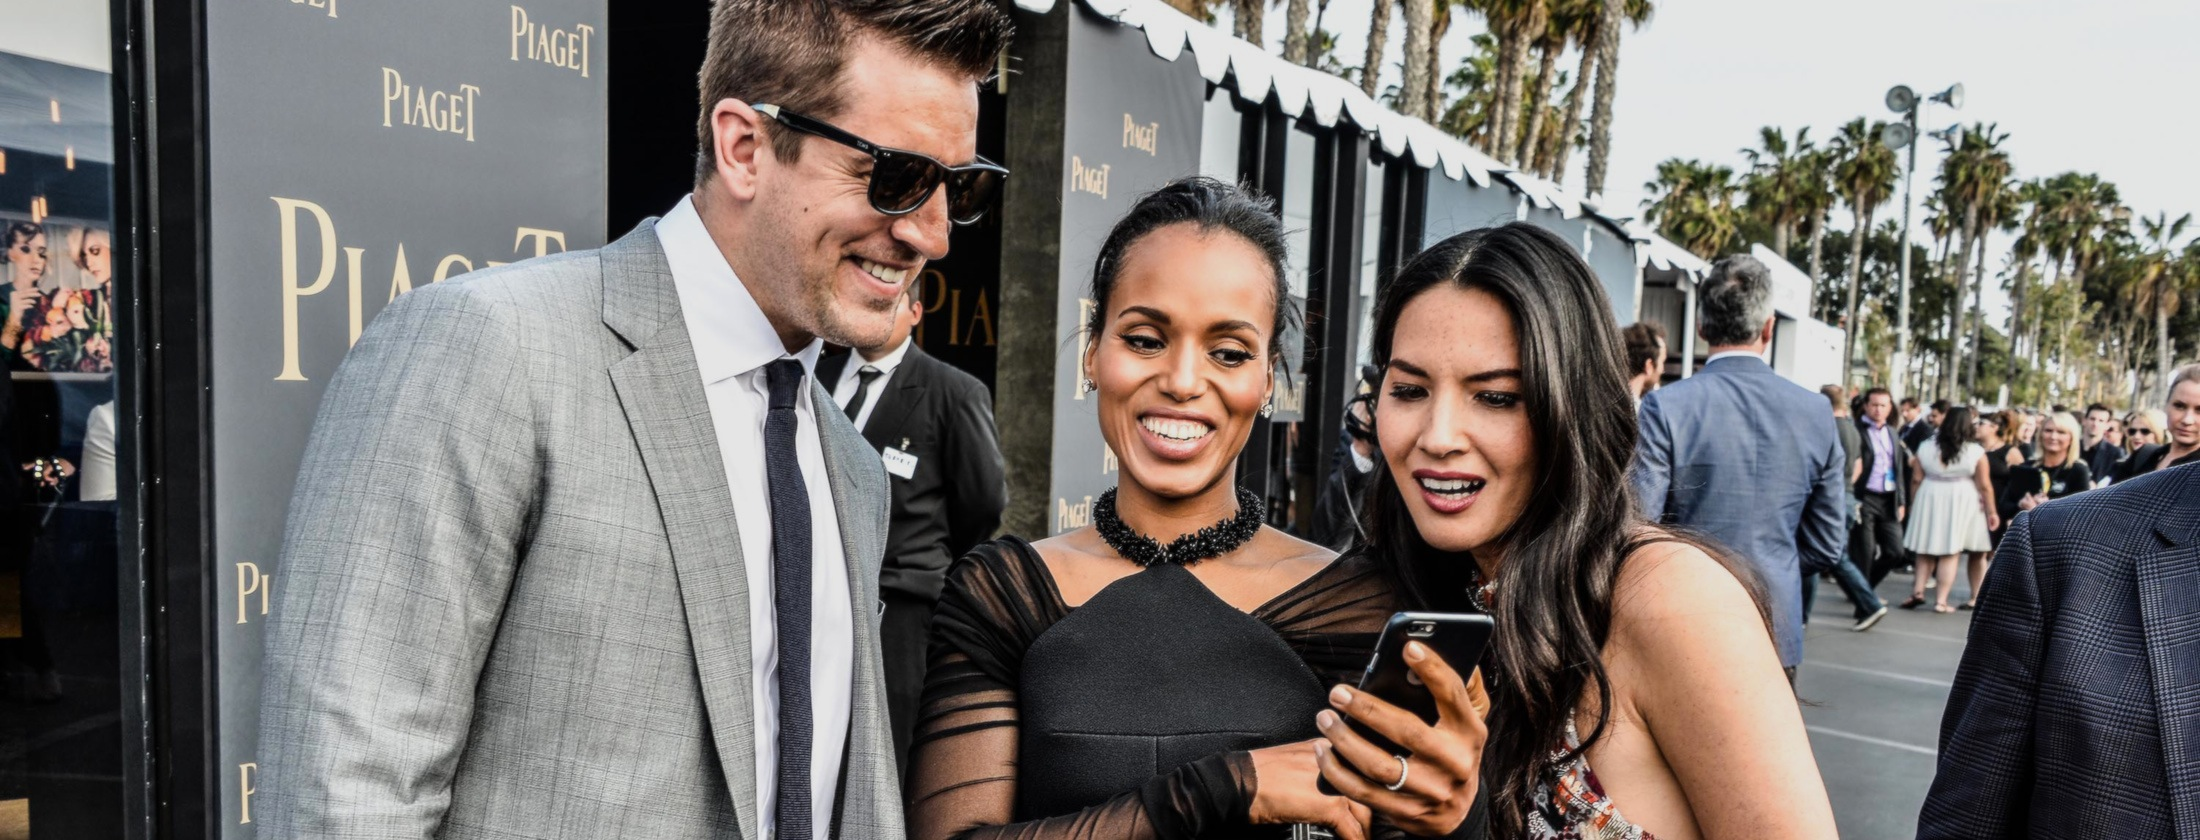 SANTA MONICA, CA - FEBRUARY 21:  NFL player Aaron Rodgers, Kerry Washington and Olivia Munn attend the 2015 Film Independent Spirit Awards at Santa Monica Beach on February 21, 2015 in Santa Monica, California.  (Photo by George Pimentel/WireImage)